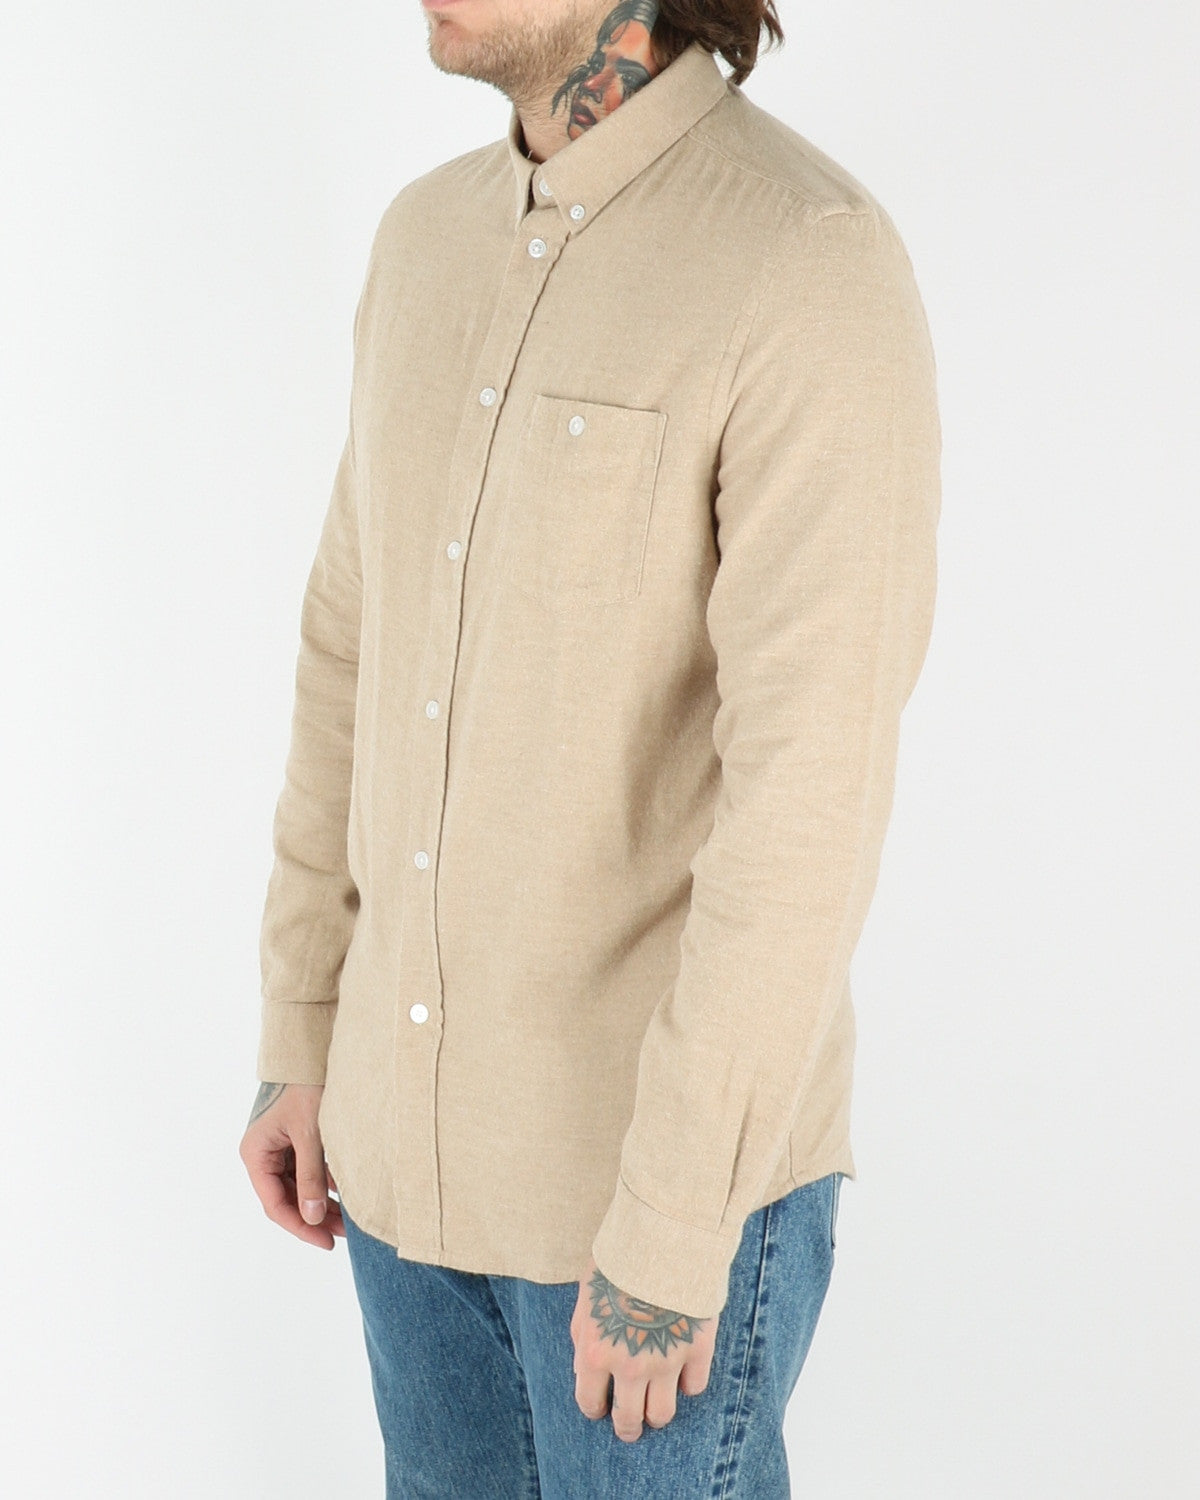 wac we are cph_davy_shirt_khaki melange_view_2_2